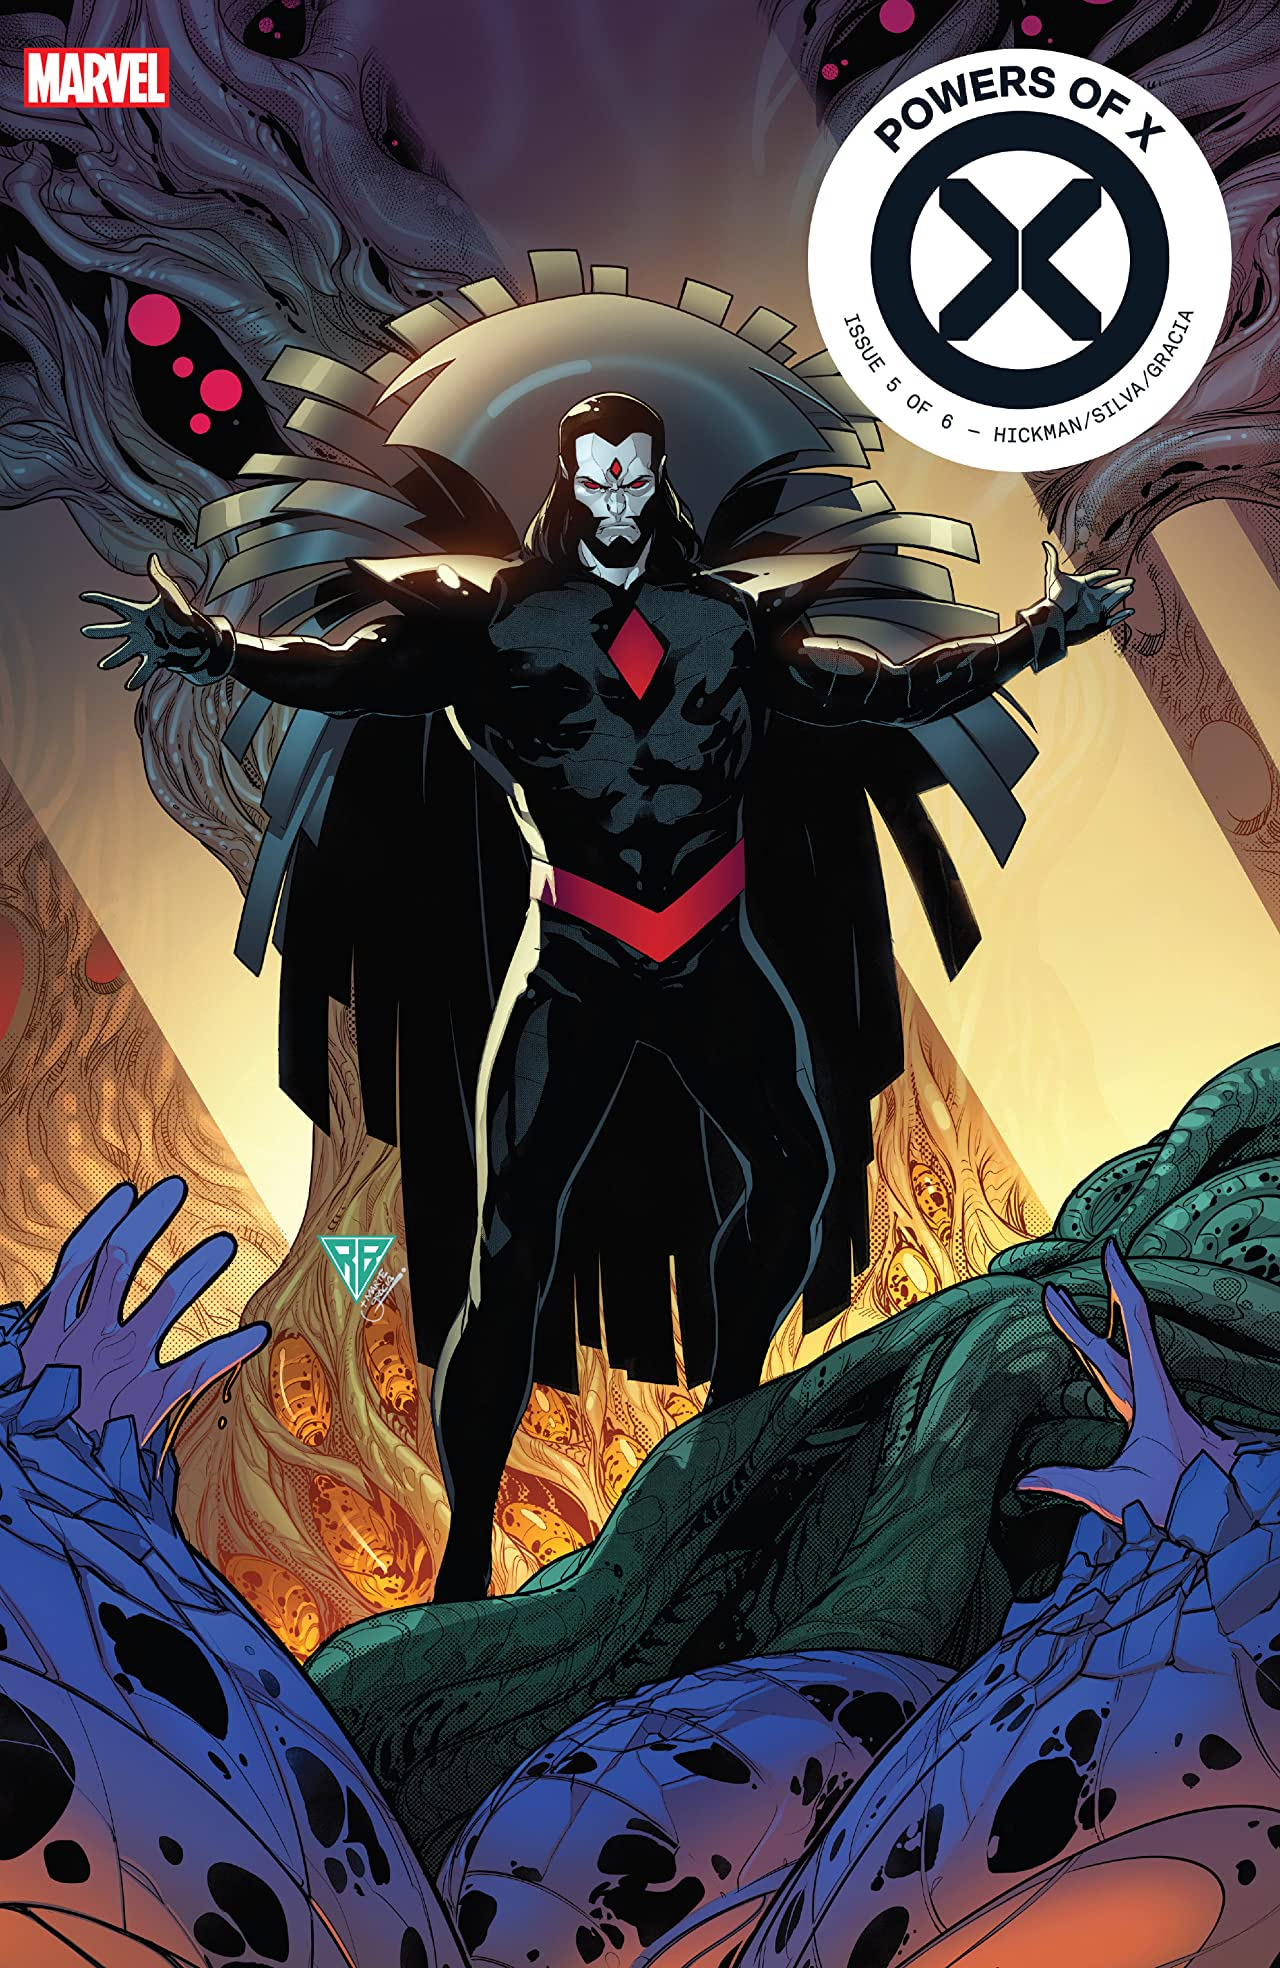 Powers Of X (2019) #5 (of 6)